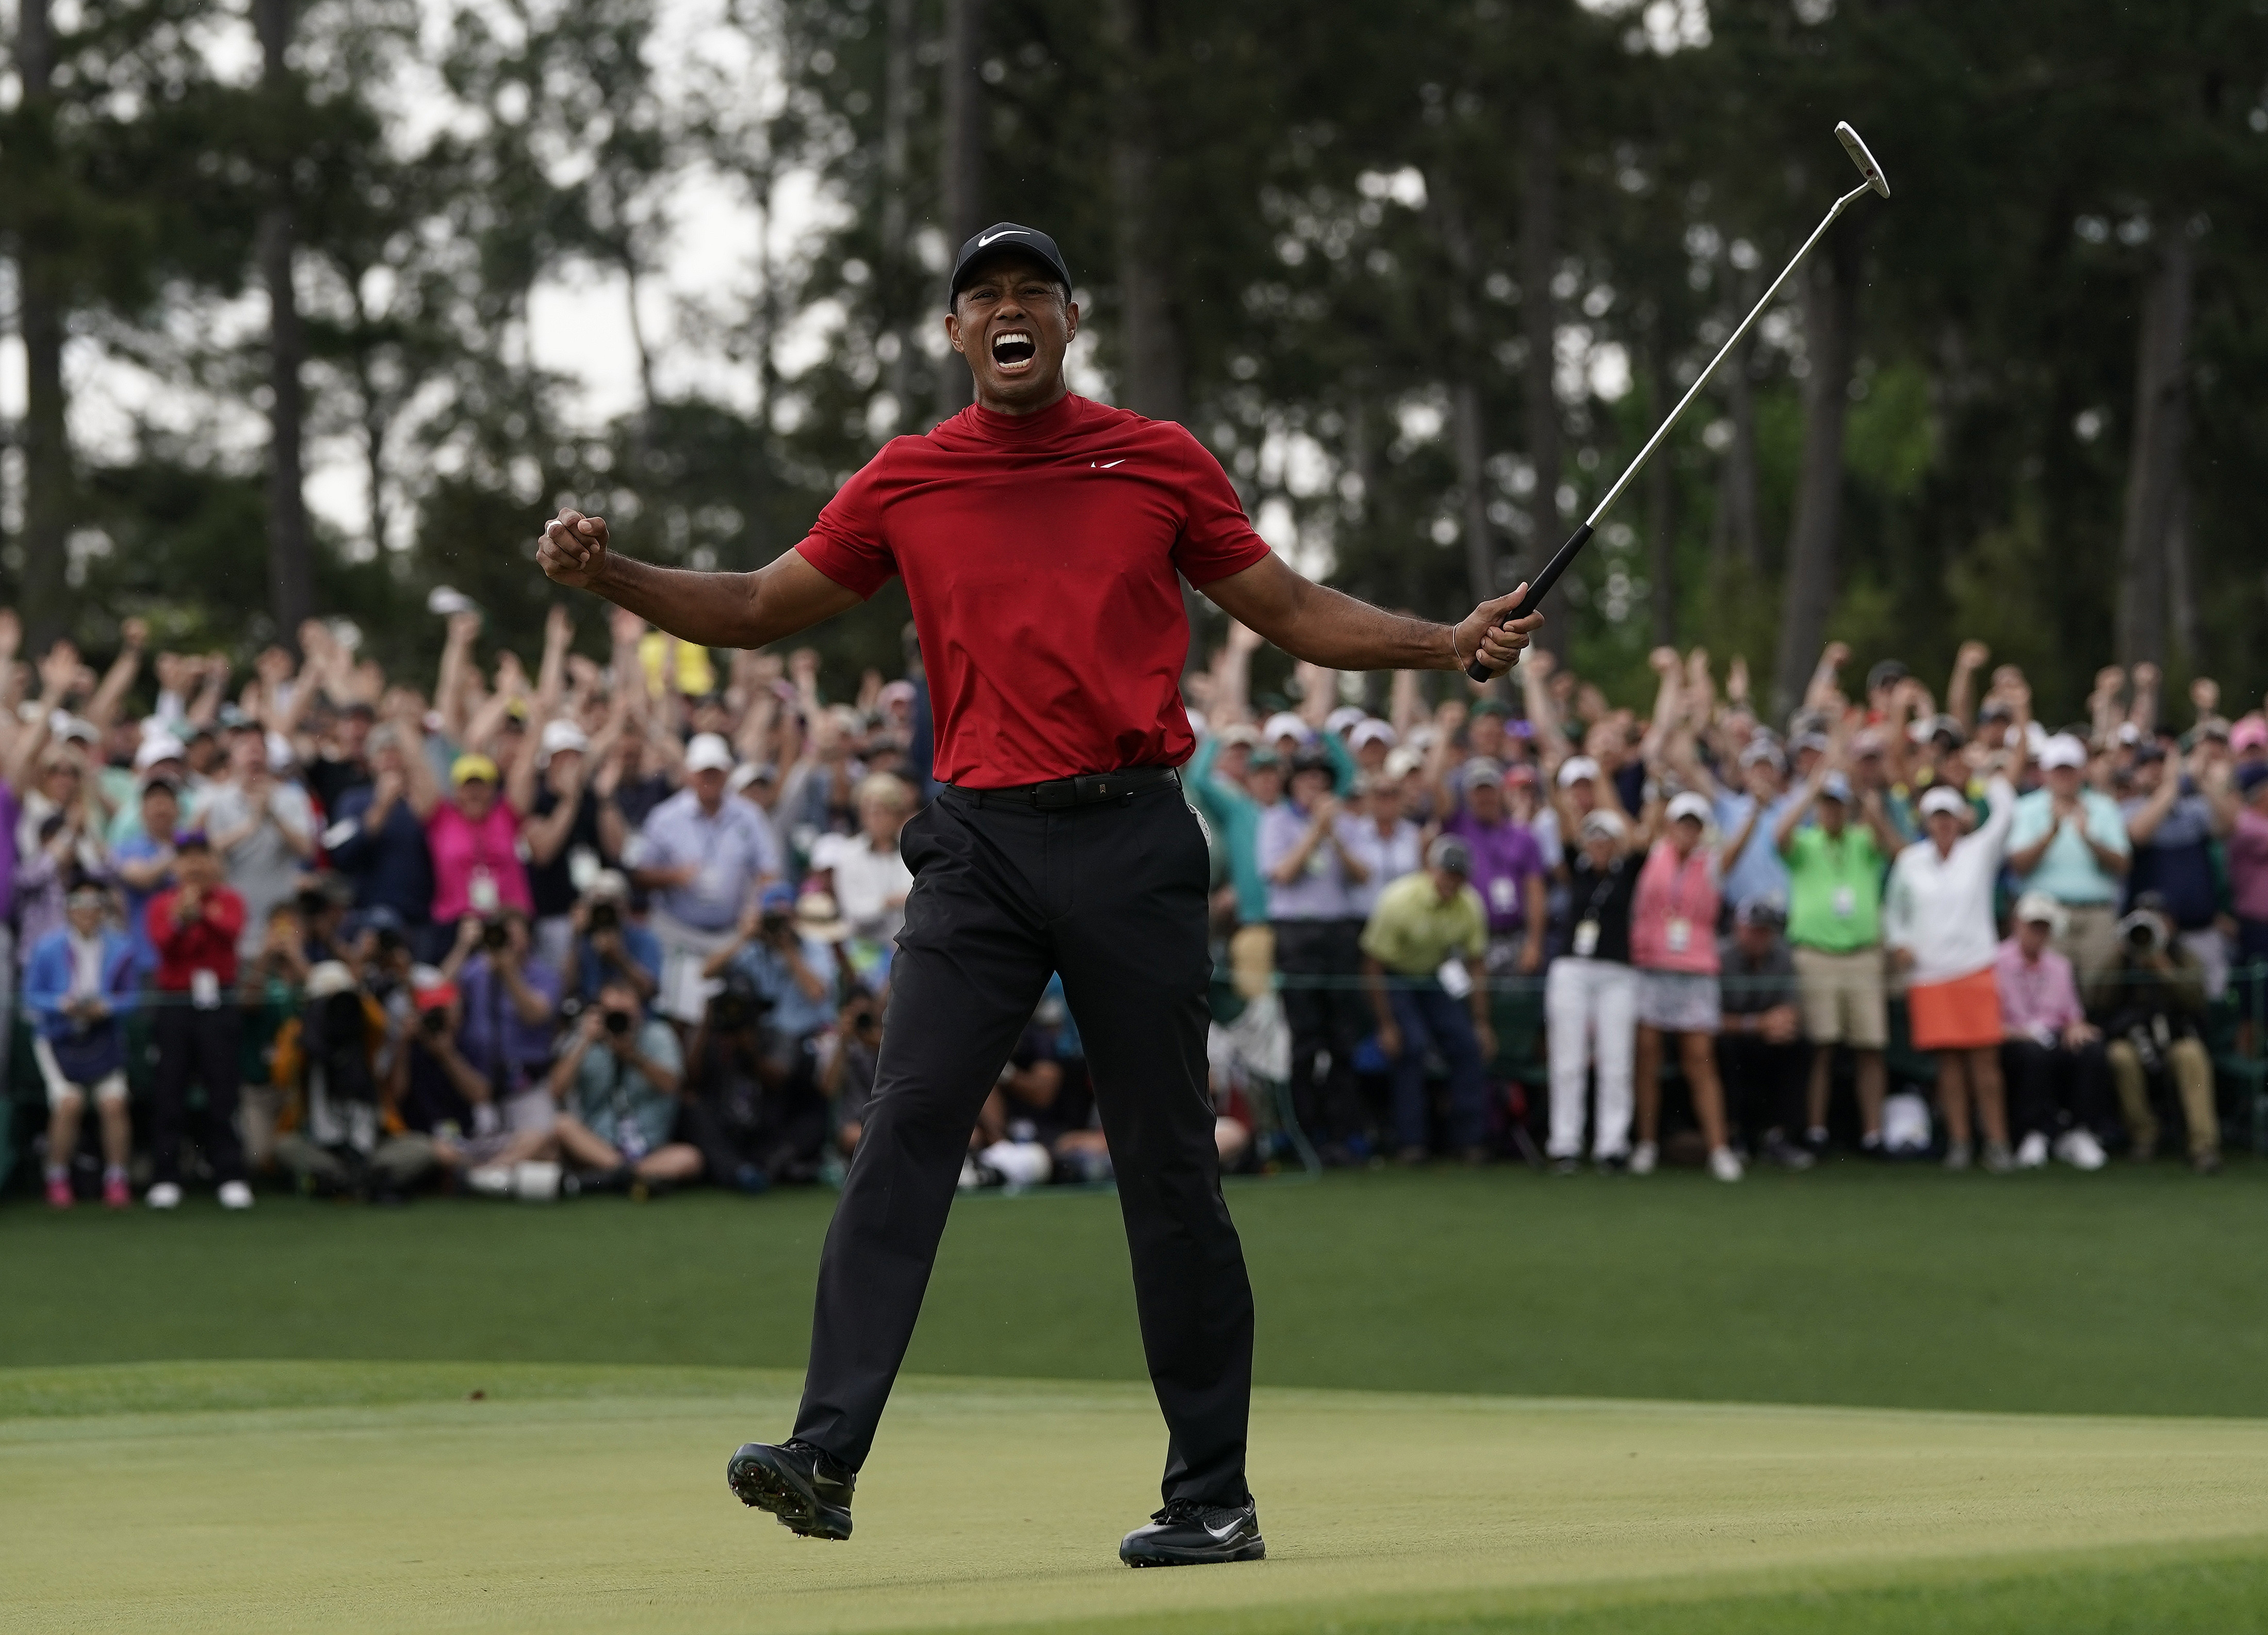 d038e67f Tiger Woods wins Masters for fifth time - CNN Video